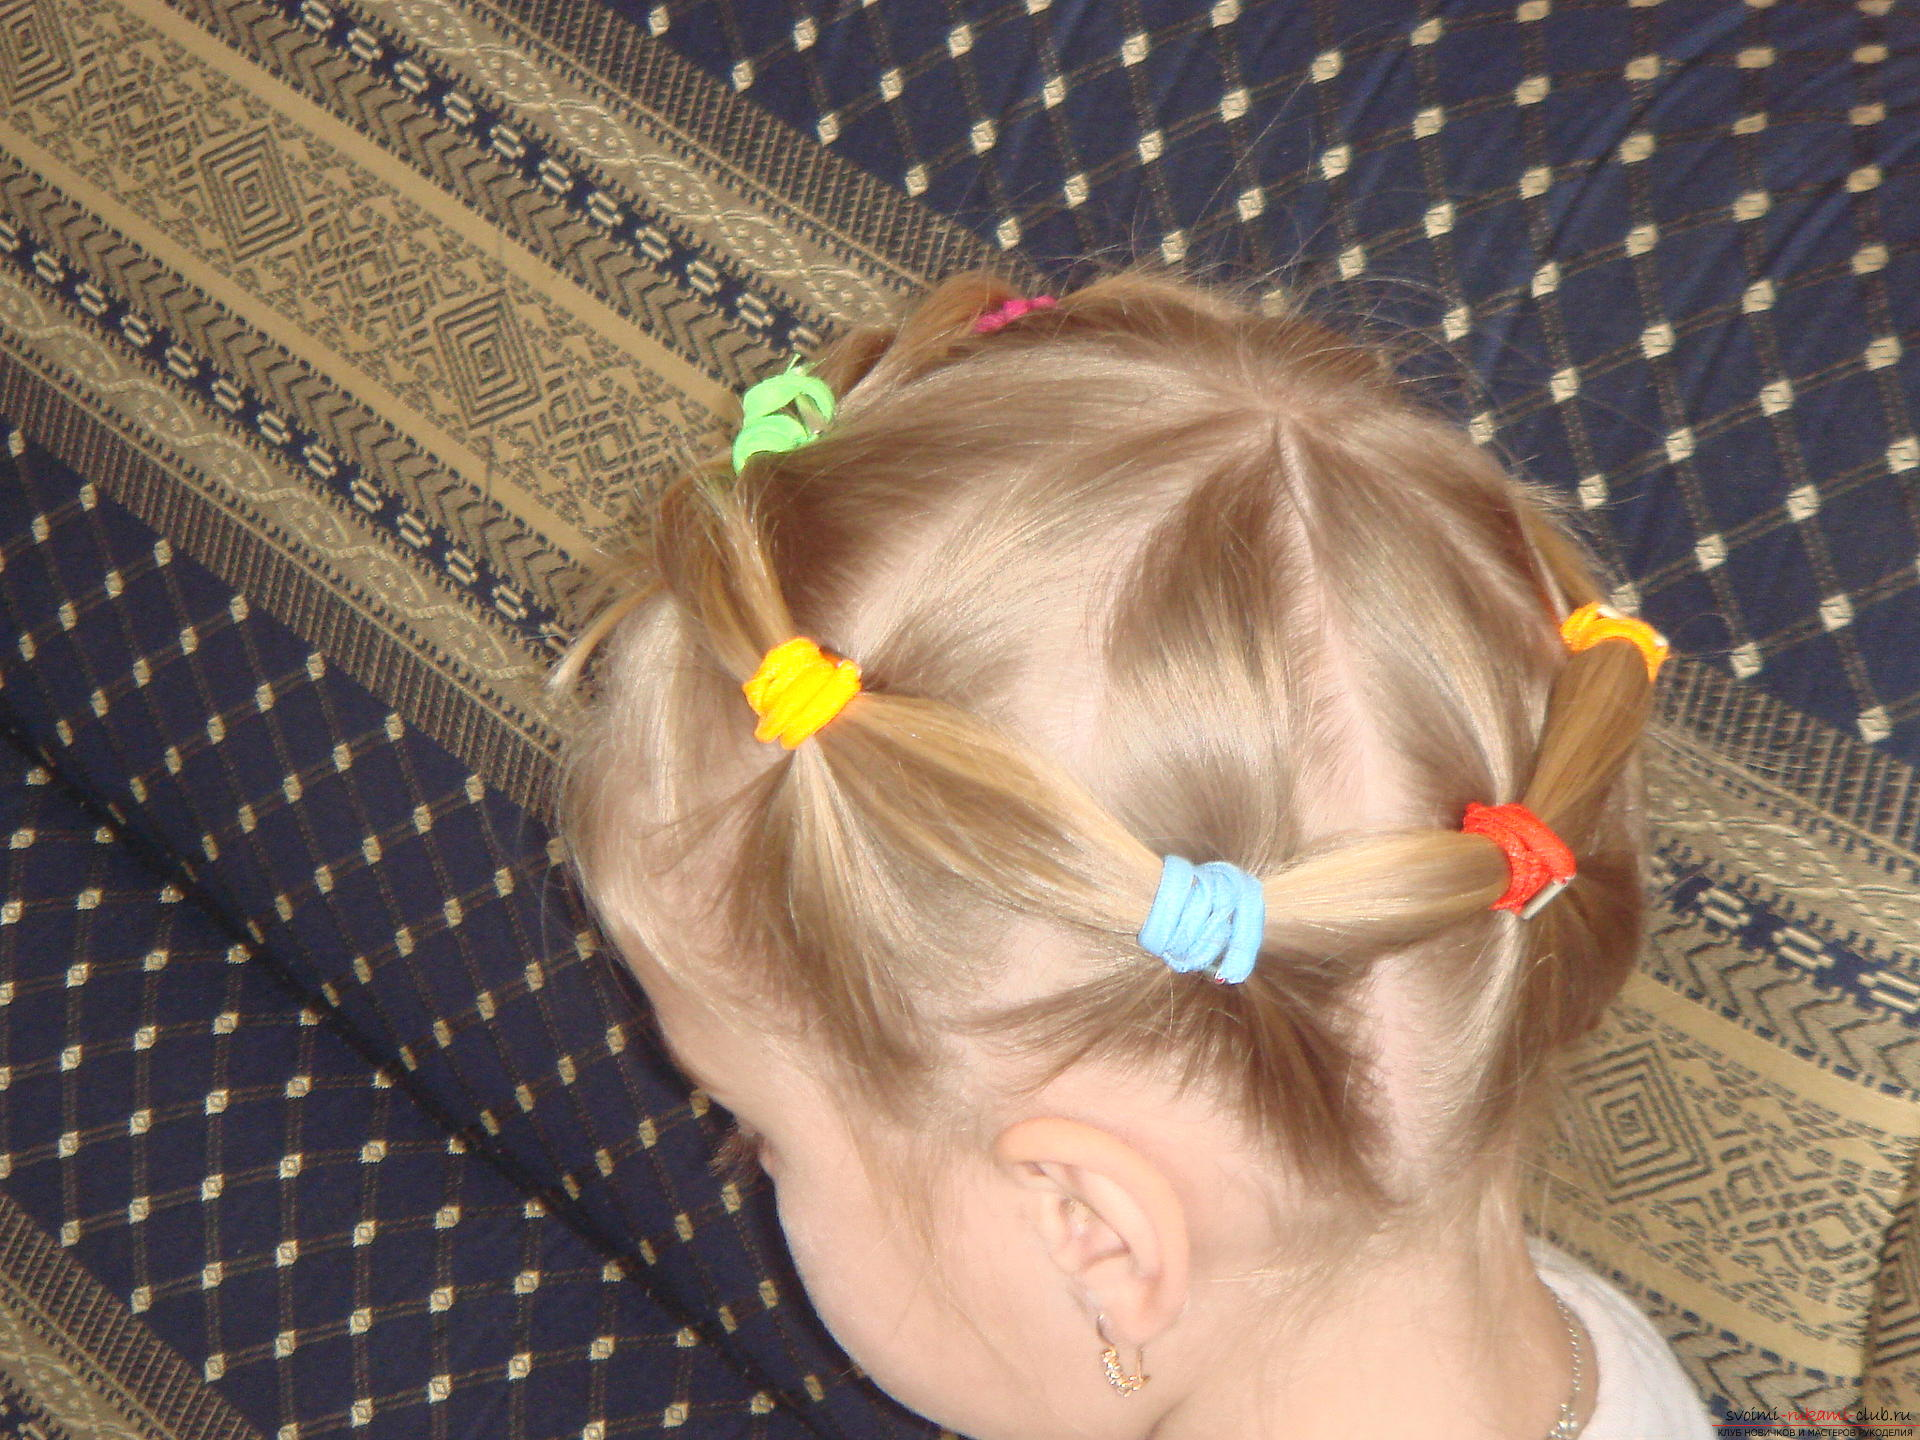 Not complicated hairstyles for little girls. Photo # 2